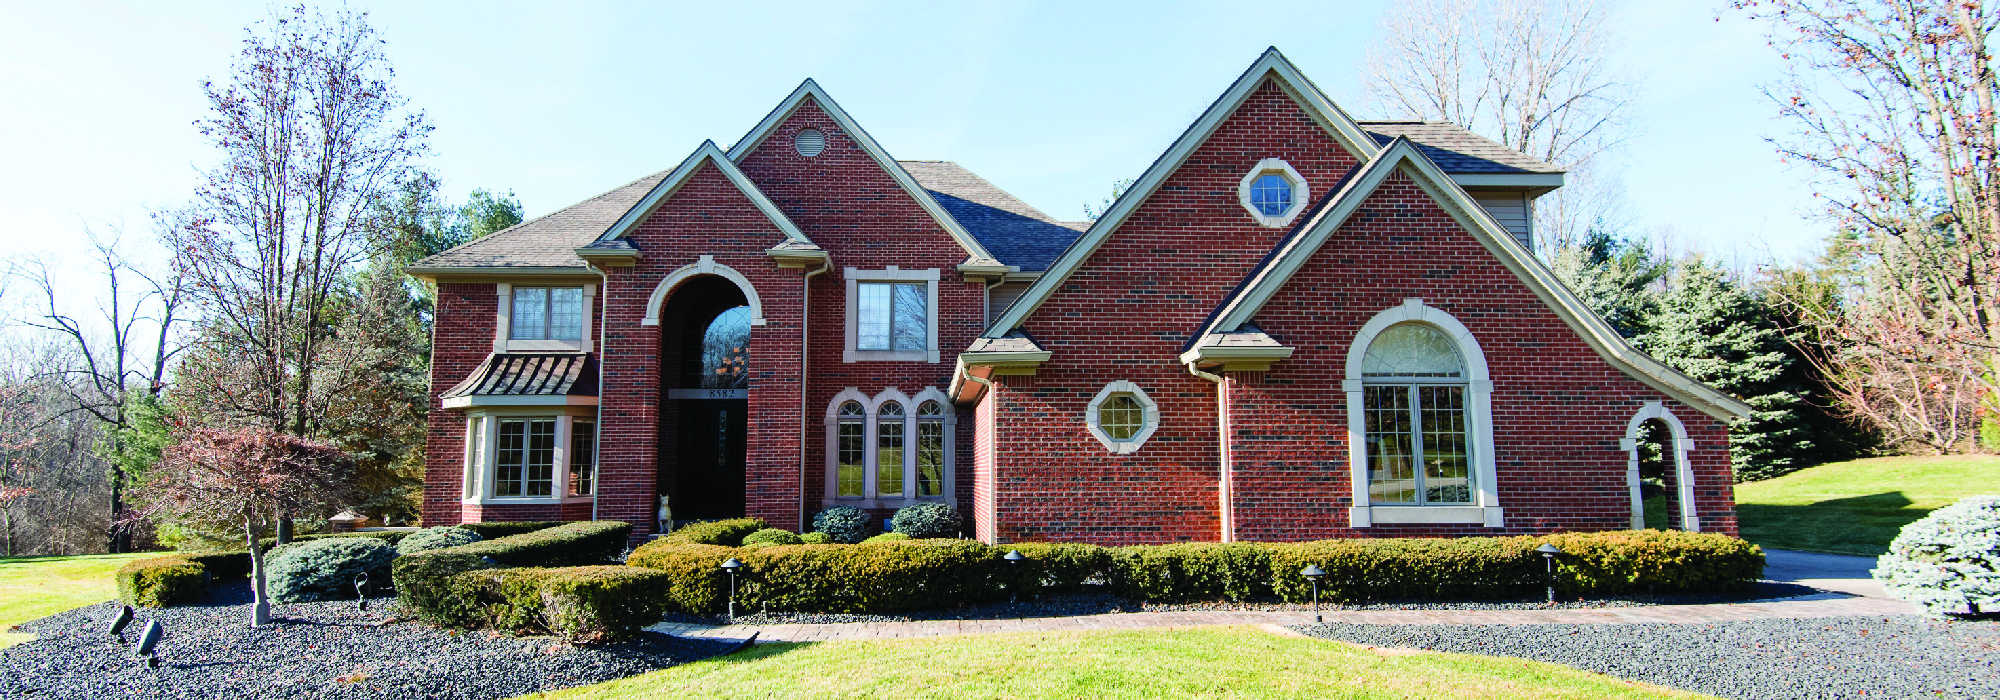 8582 Forestview Drive, Canton